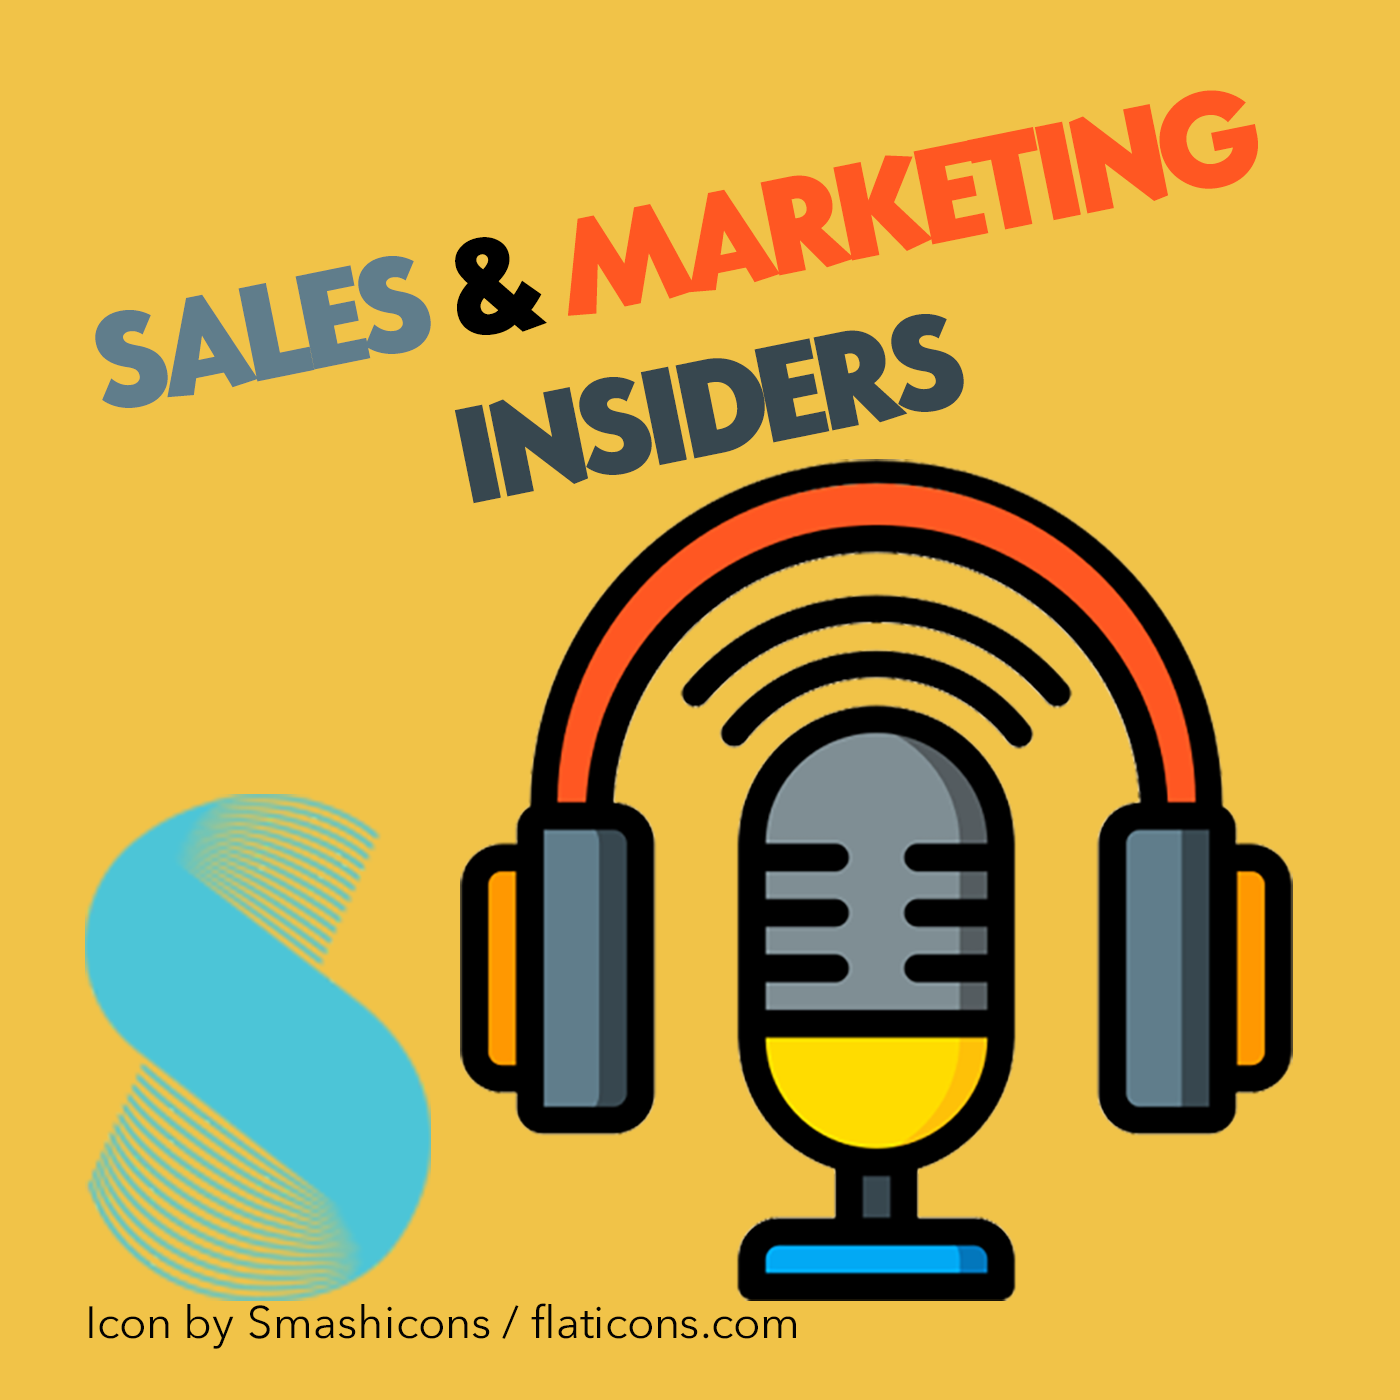 Sales & Marketing Insiders